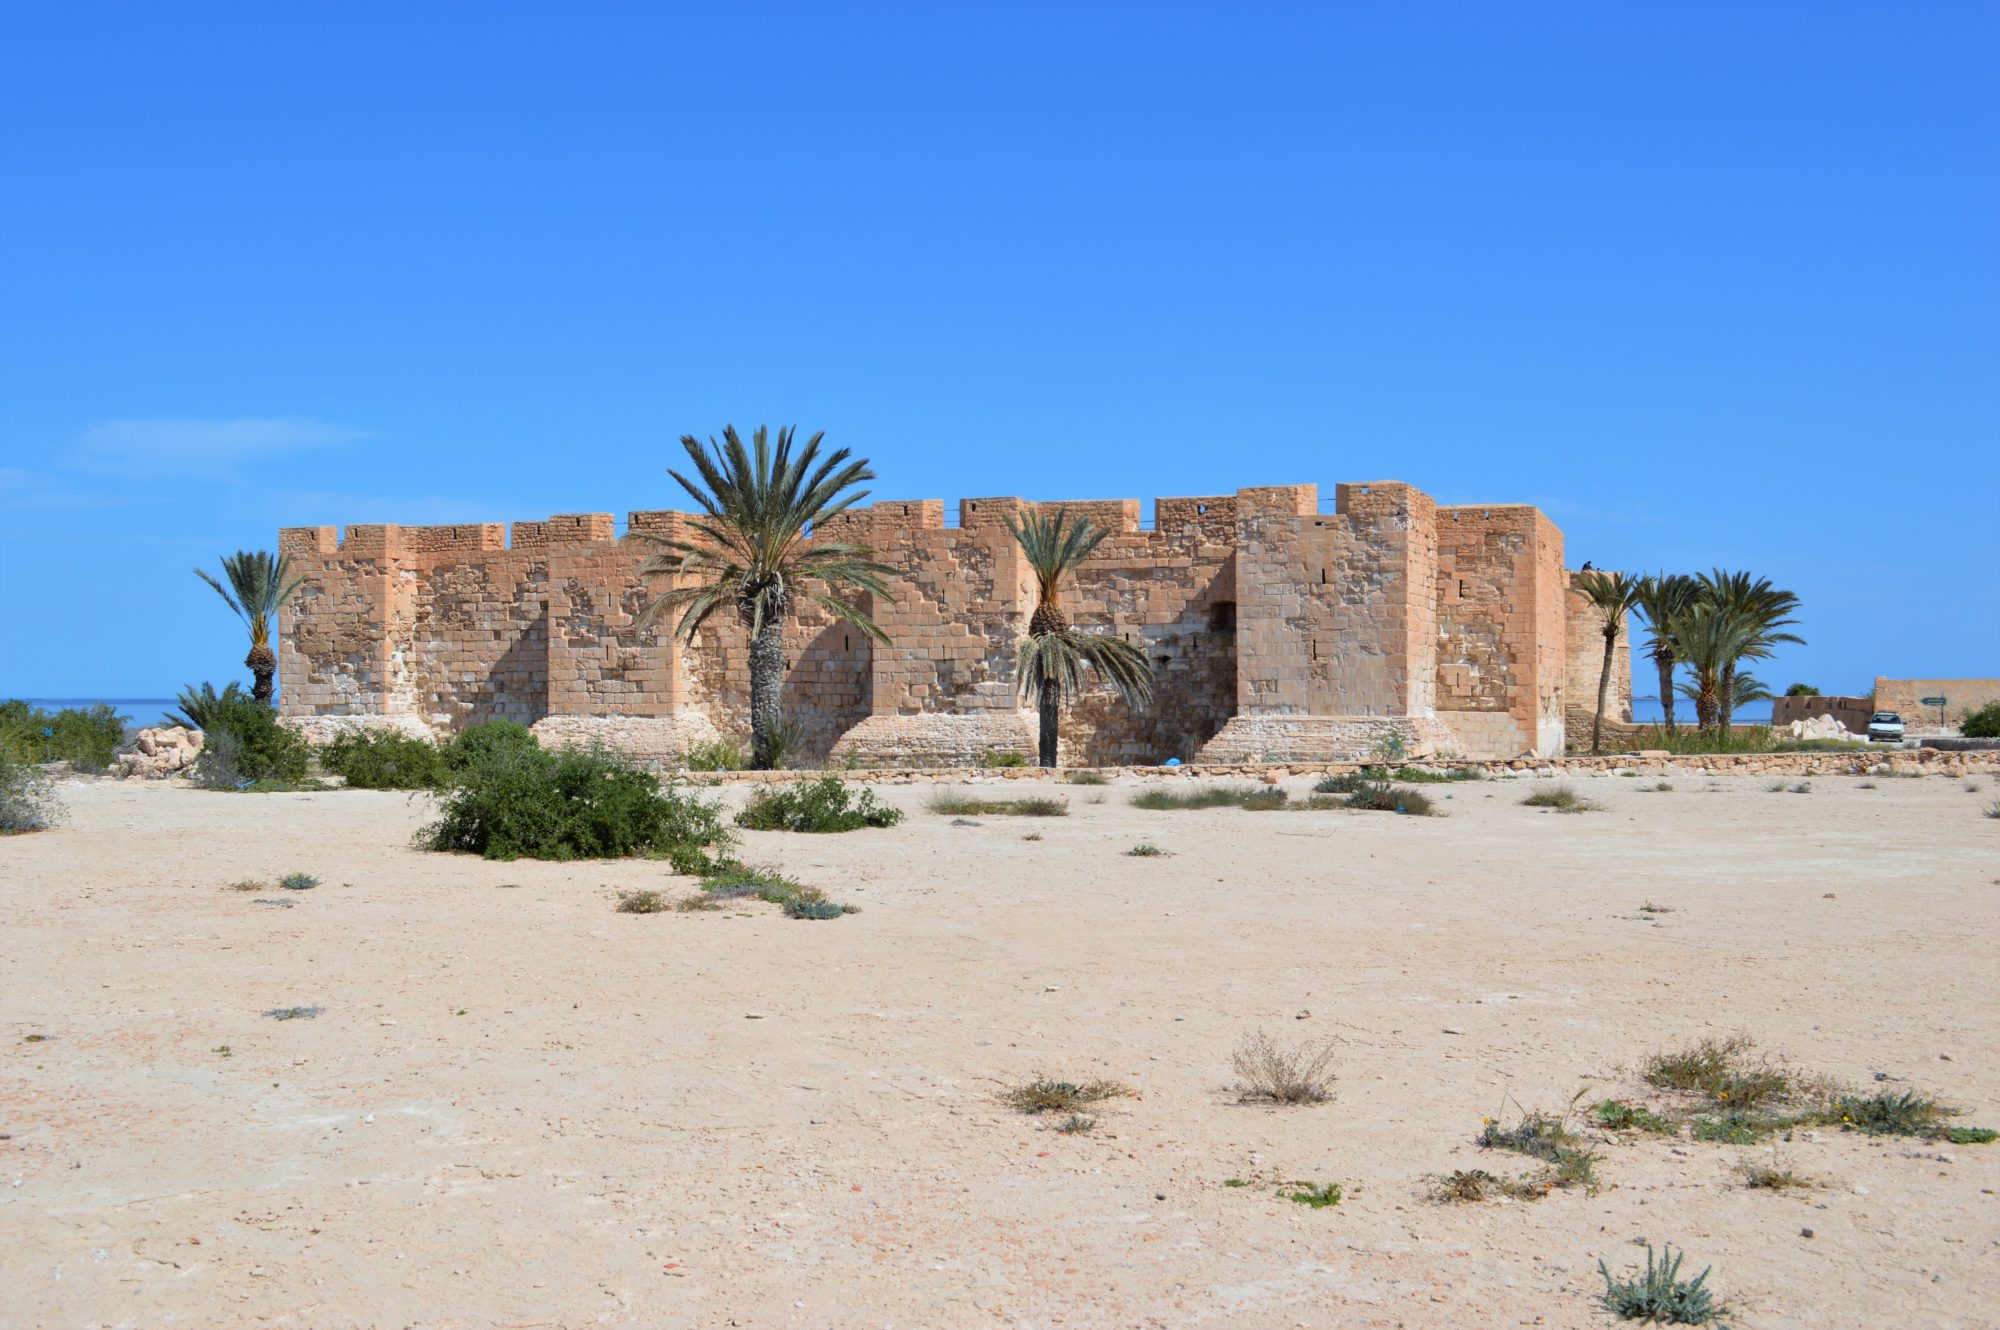 bordj-el-kebir-fort-ghazi-mustapha